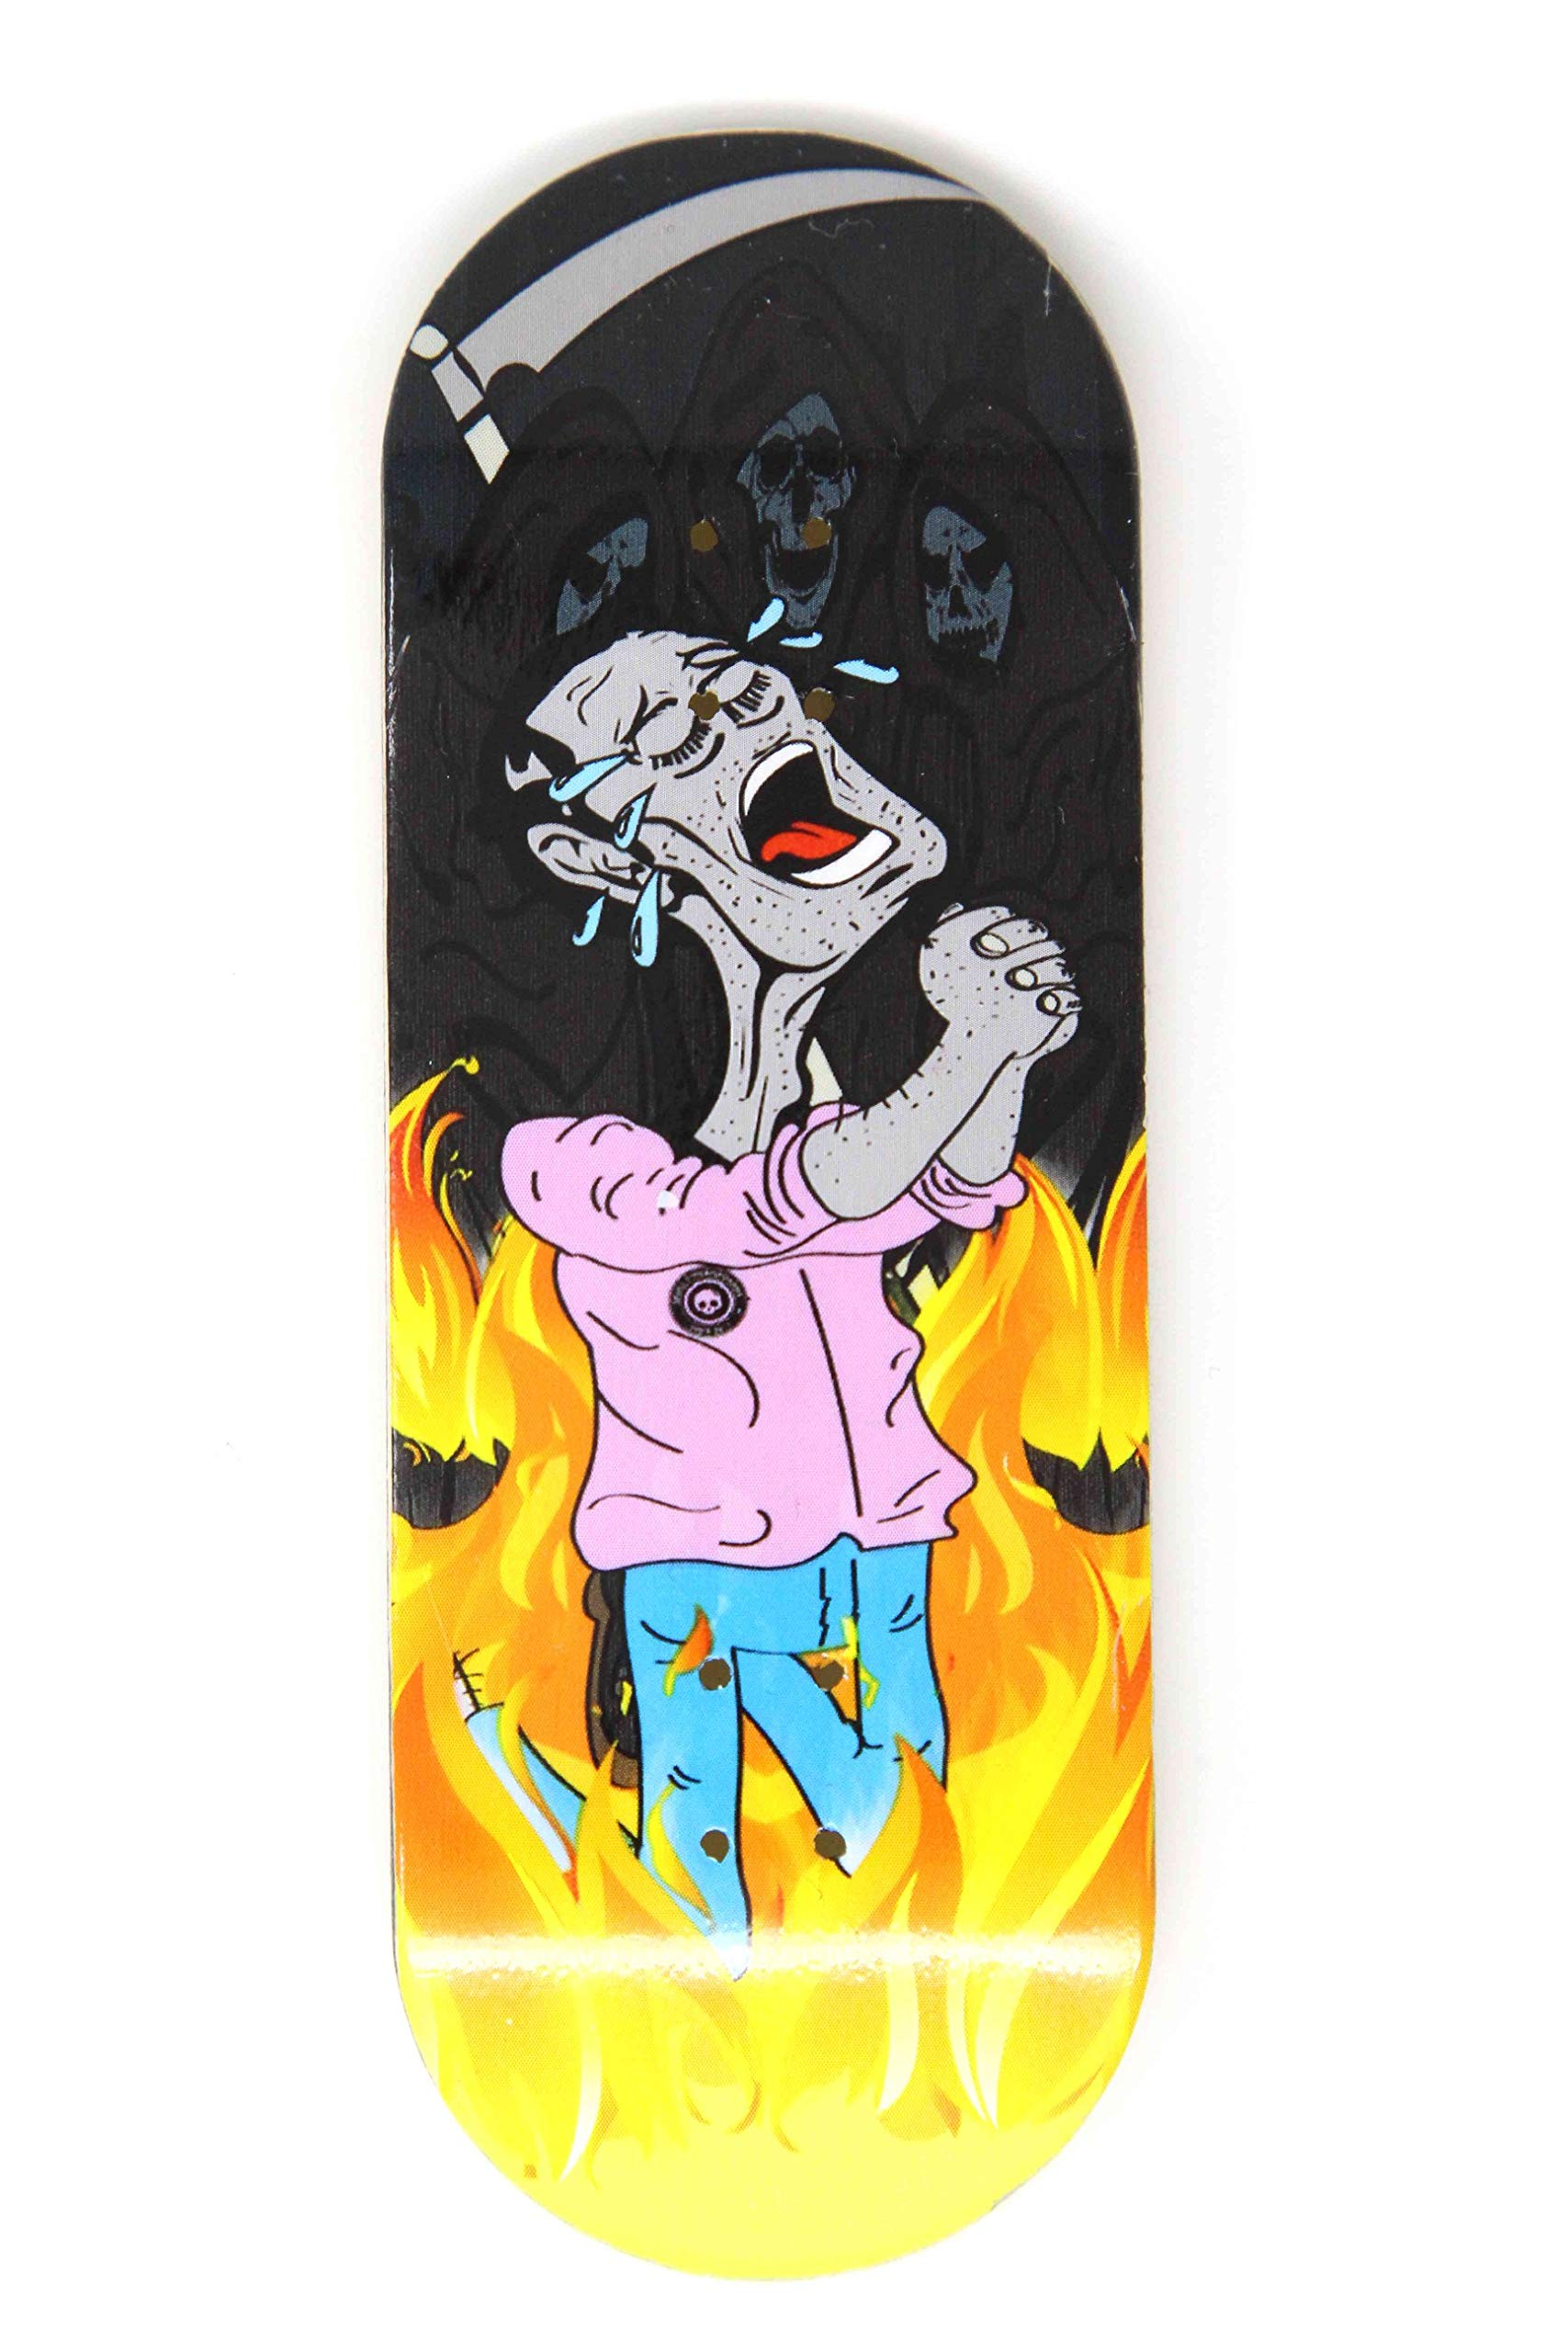 Skull Fingerboards Burning Man 34mm Complete Professional Wooden Fingerboard Mini Skateboard 5 PLY with CNC Bearing Wheels by Skull Fingerboards (Image #2)